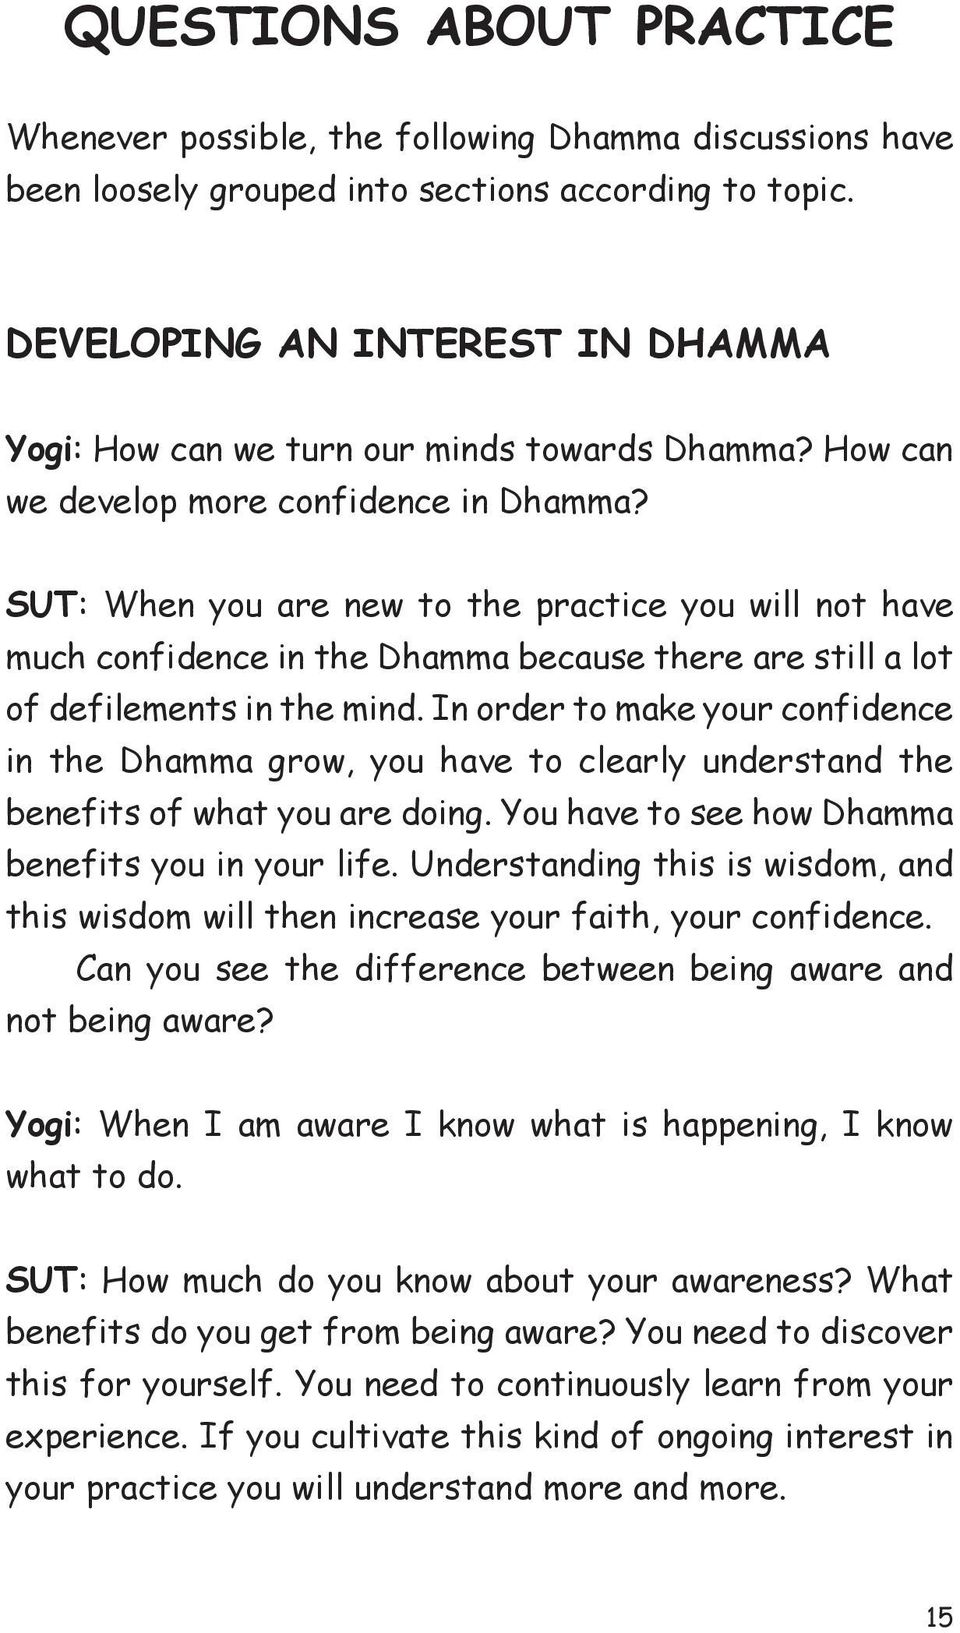 SUT: When you are new to the practice you will not have much confidence in the Dhamma because there are still a lot of defilements in the mind.